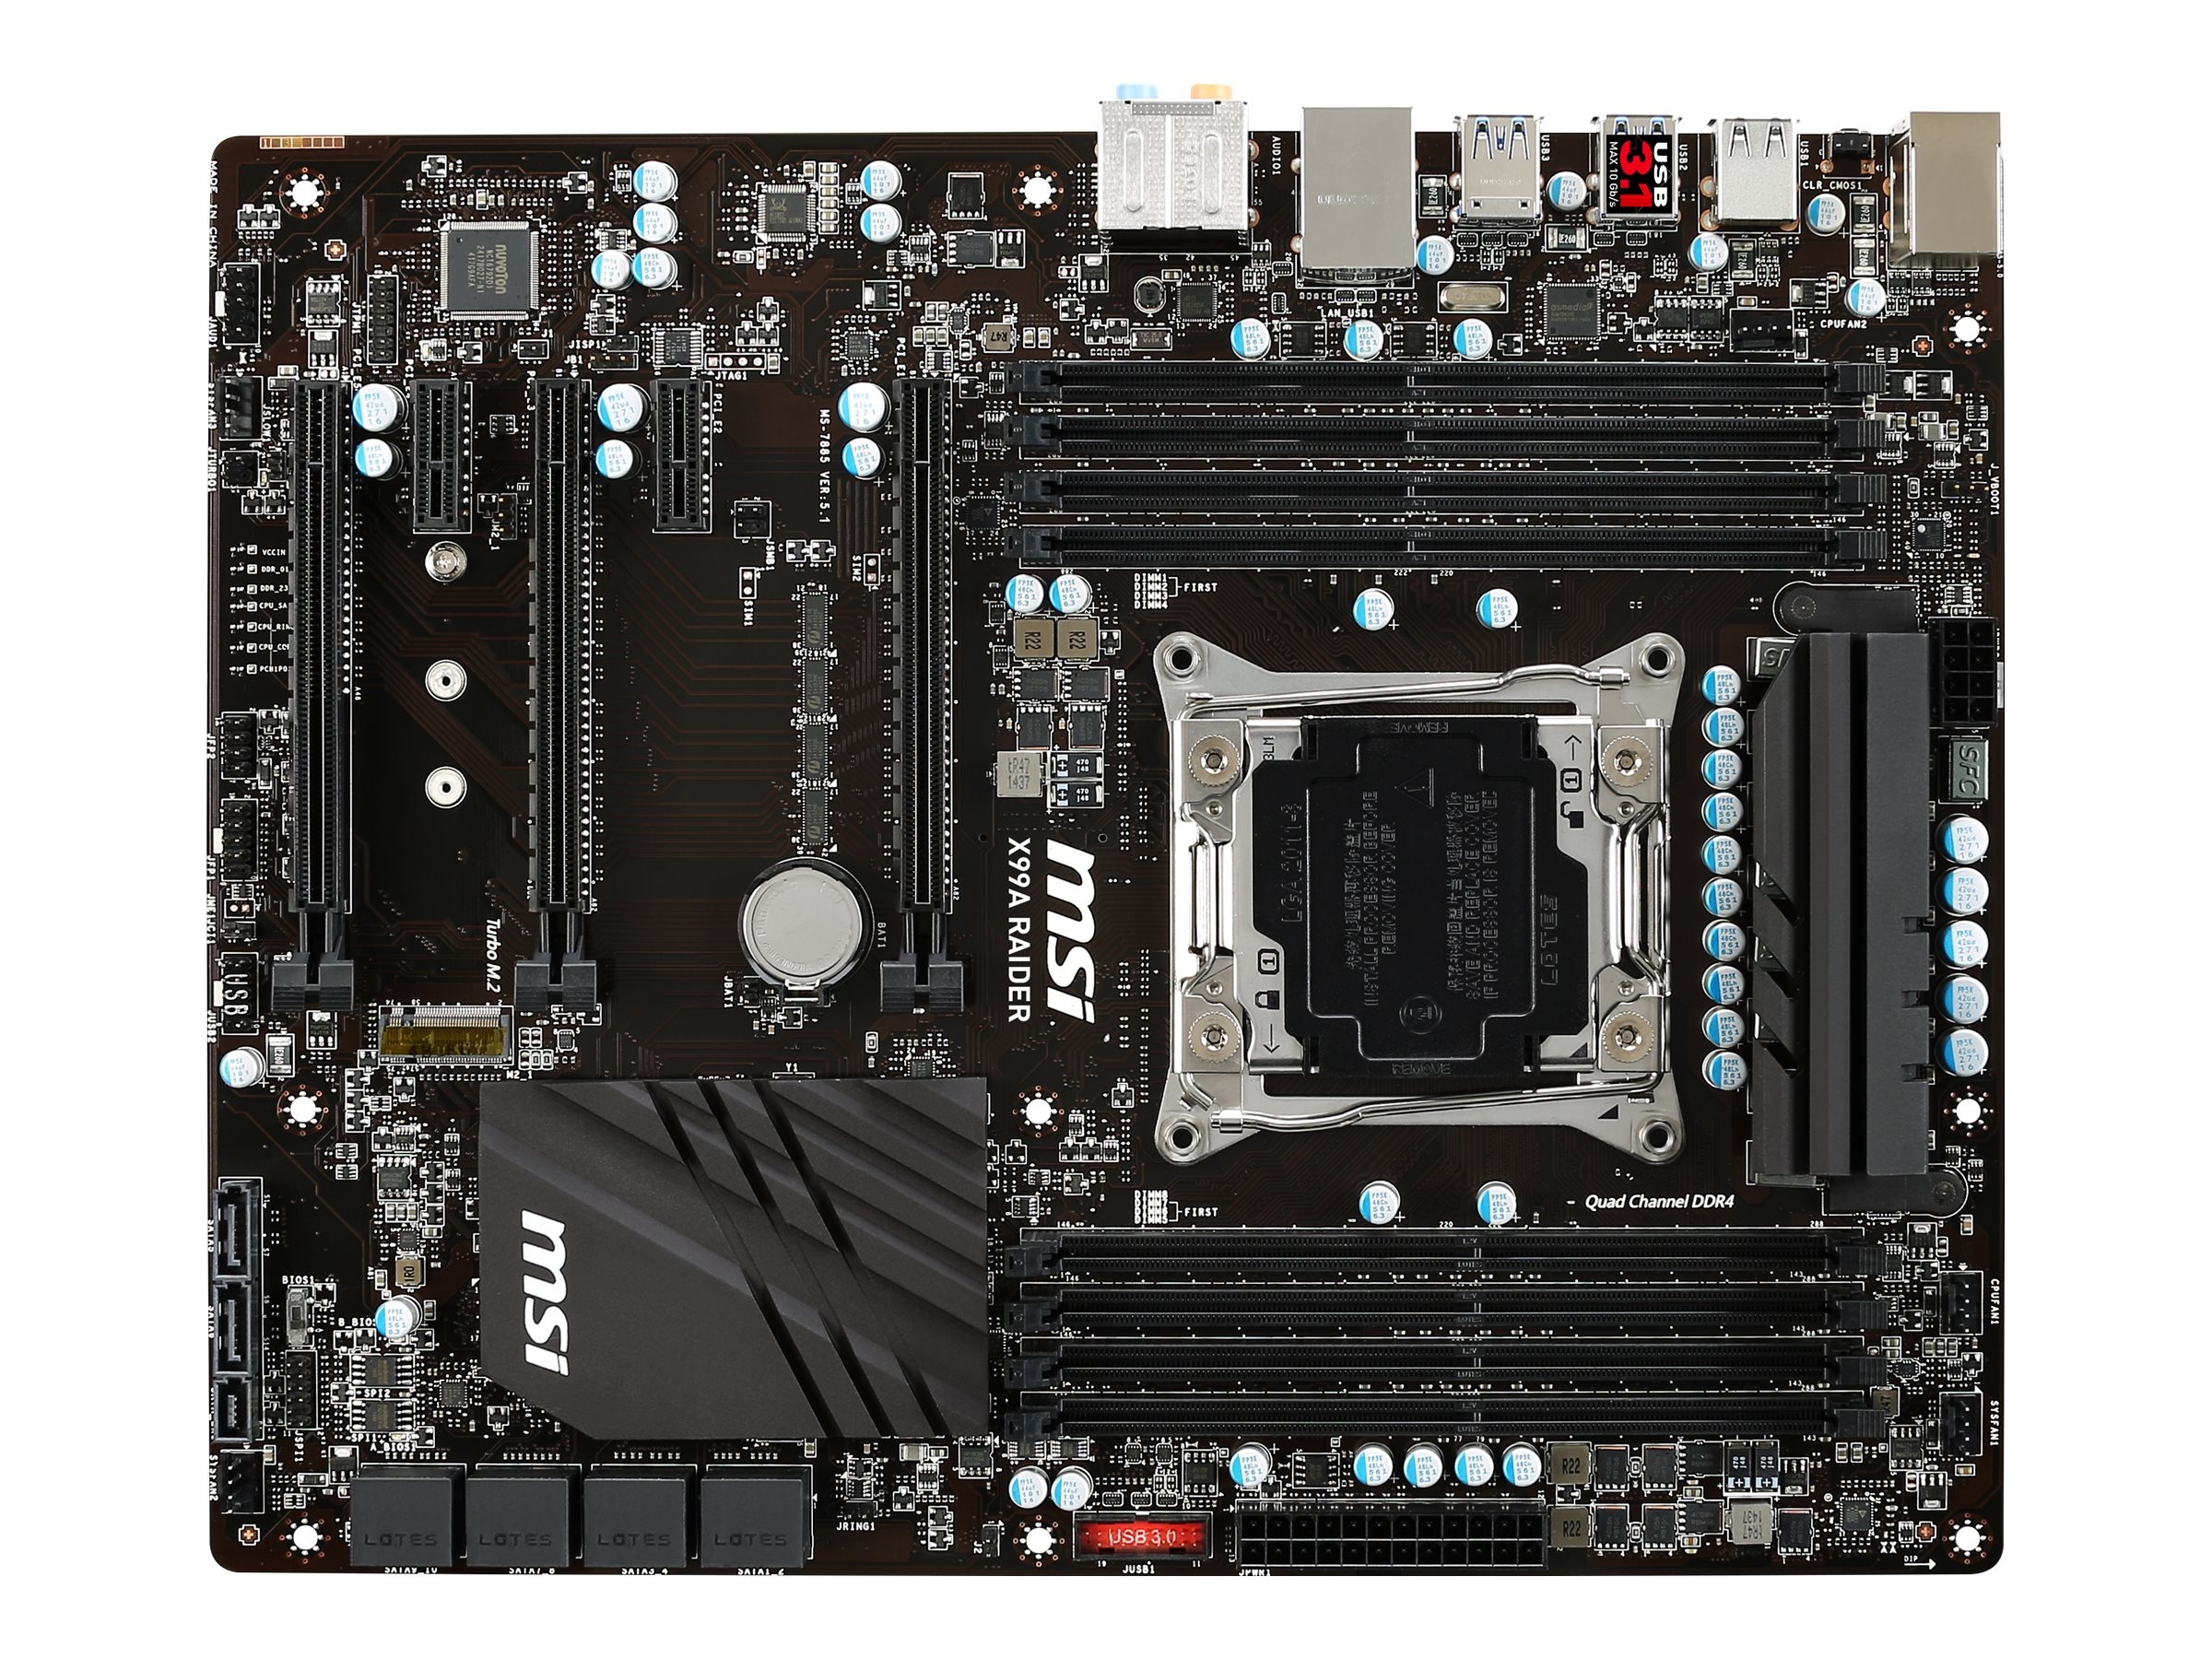 Microstar Motherboard, ATX X99 2011-3 Core i7 Extreme Family Max.128GB DDR4 10xSATA 5xPCIe GbE, X99A RAIDER, 24989511, Motherboards